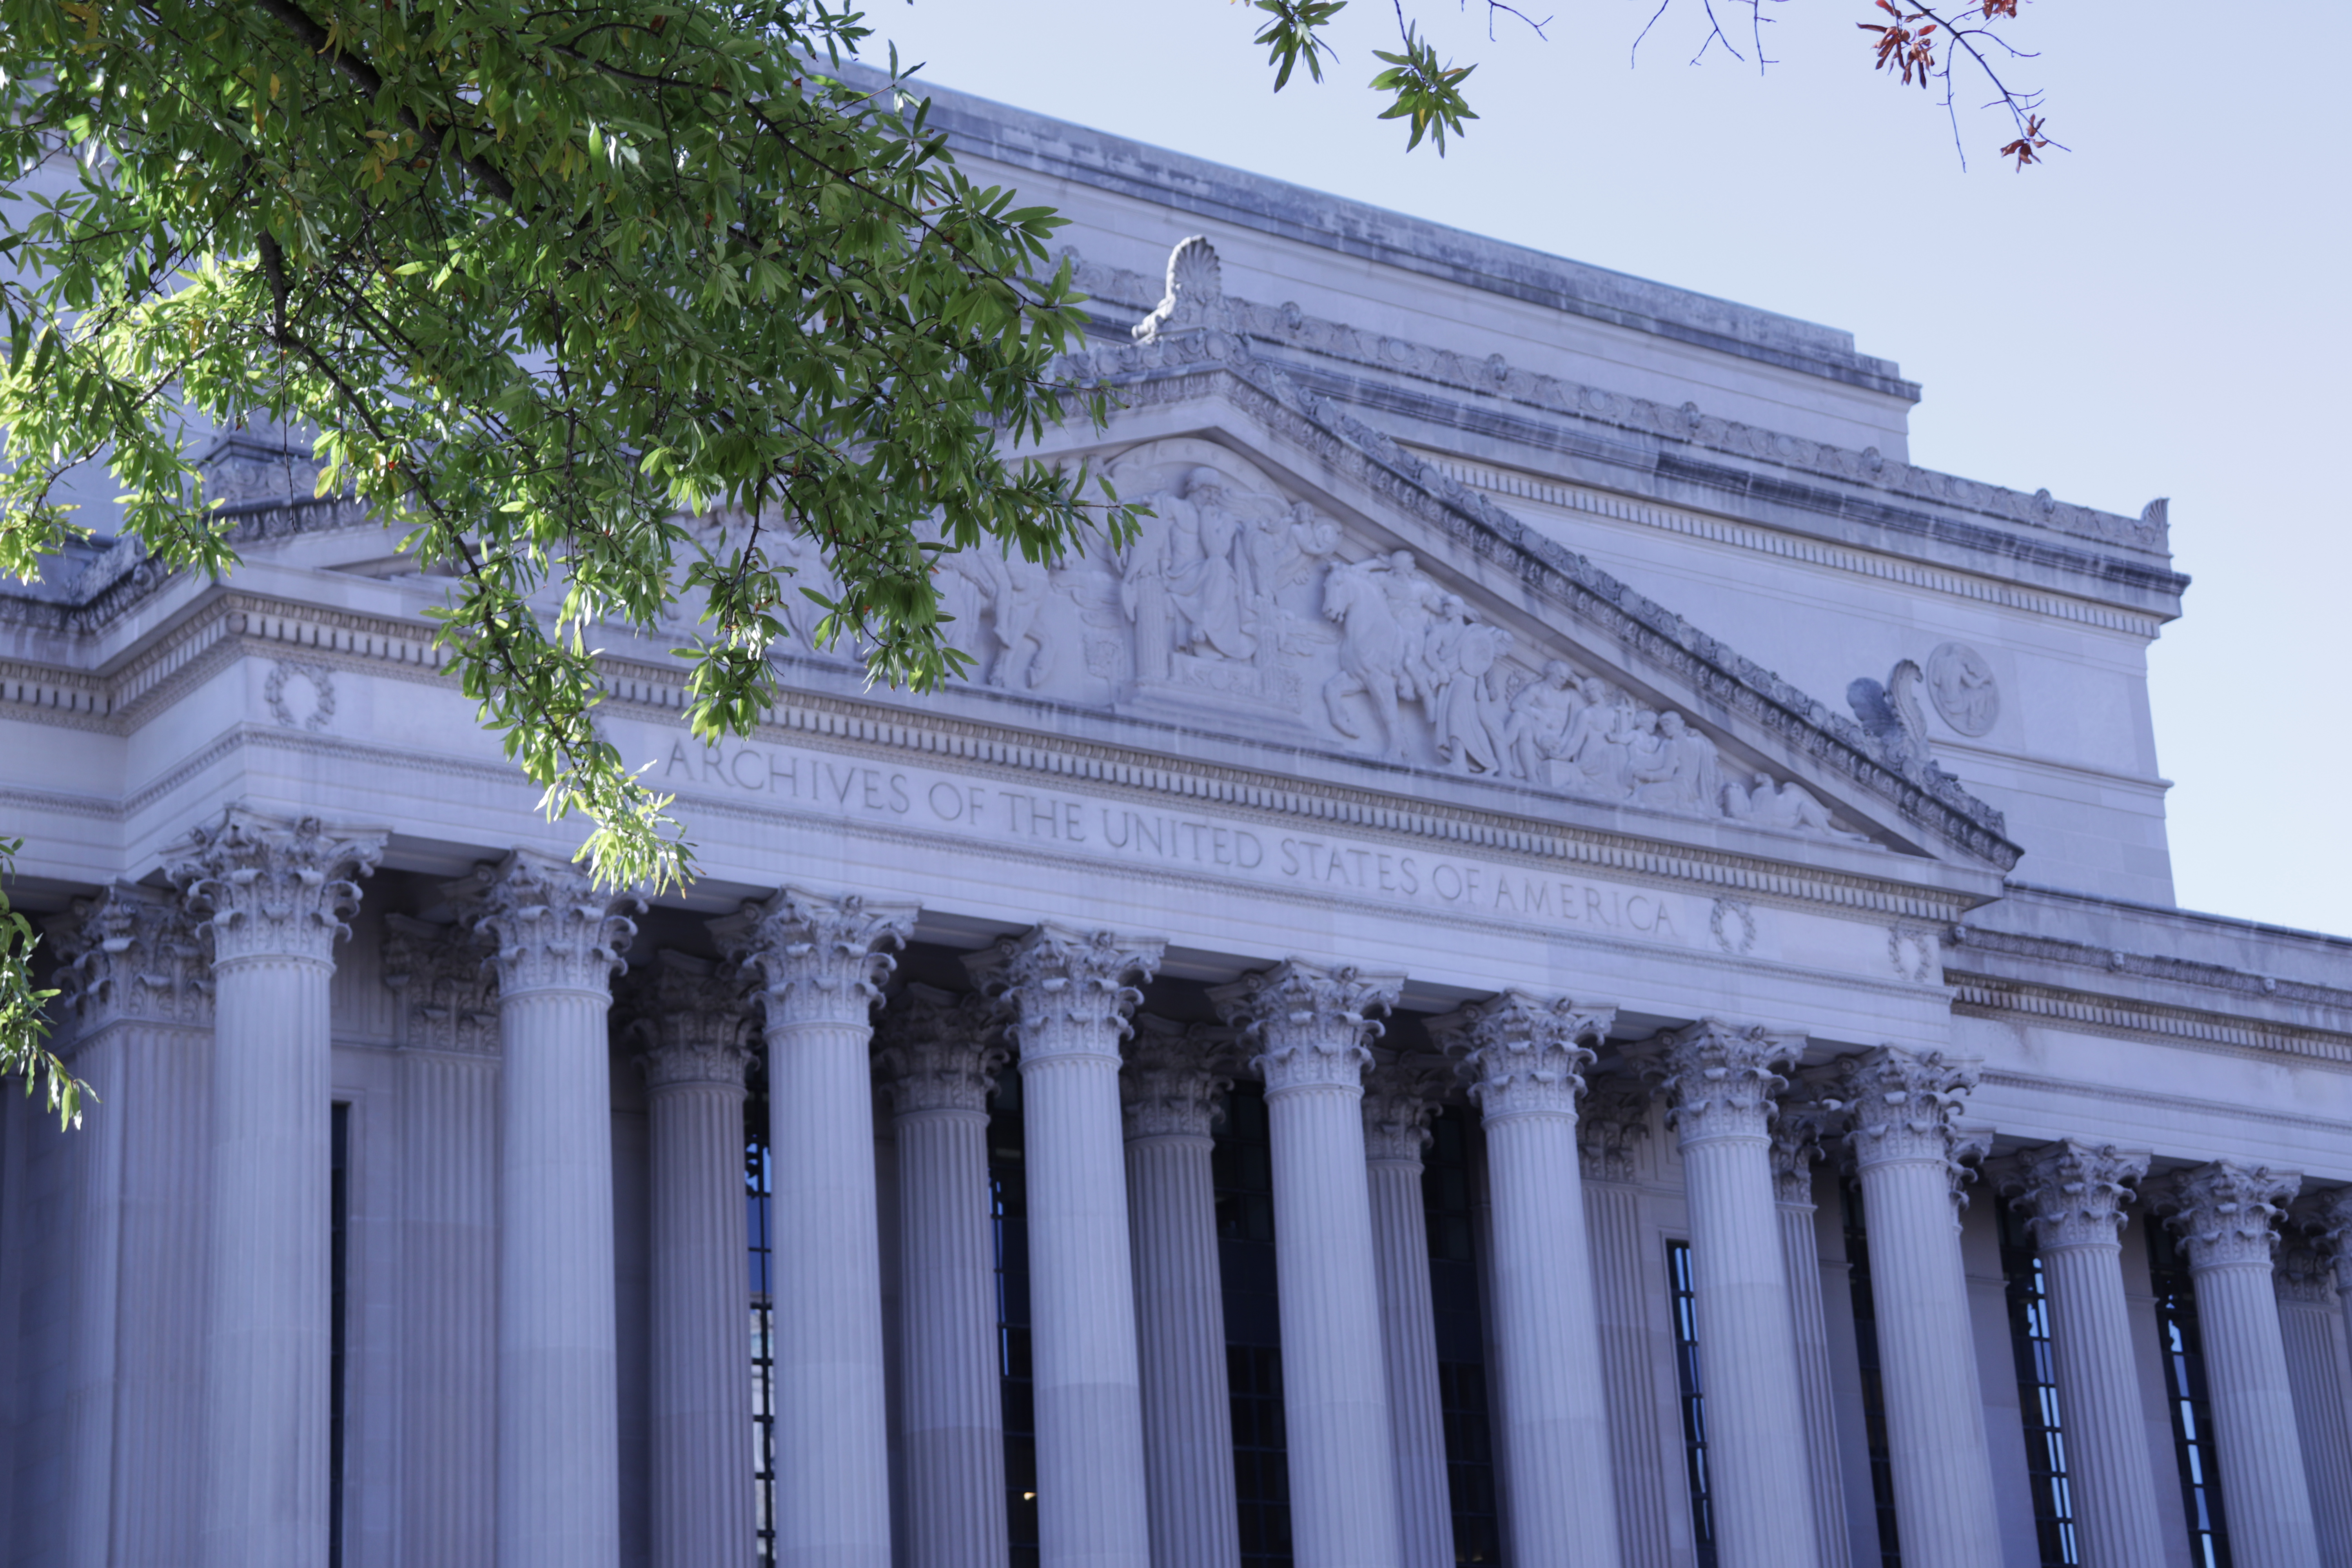 Photo of the National Archives